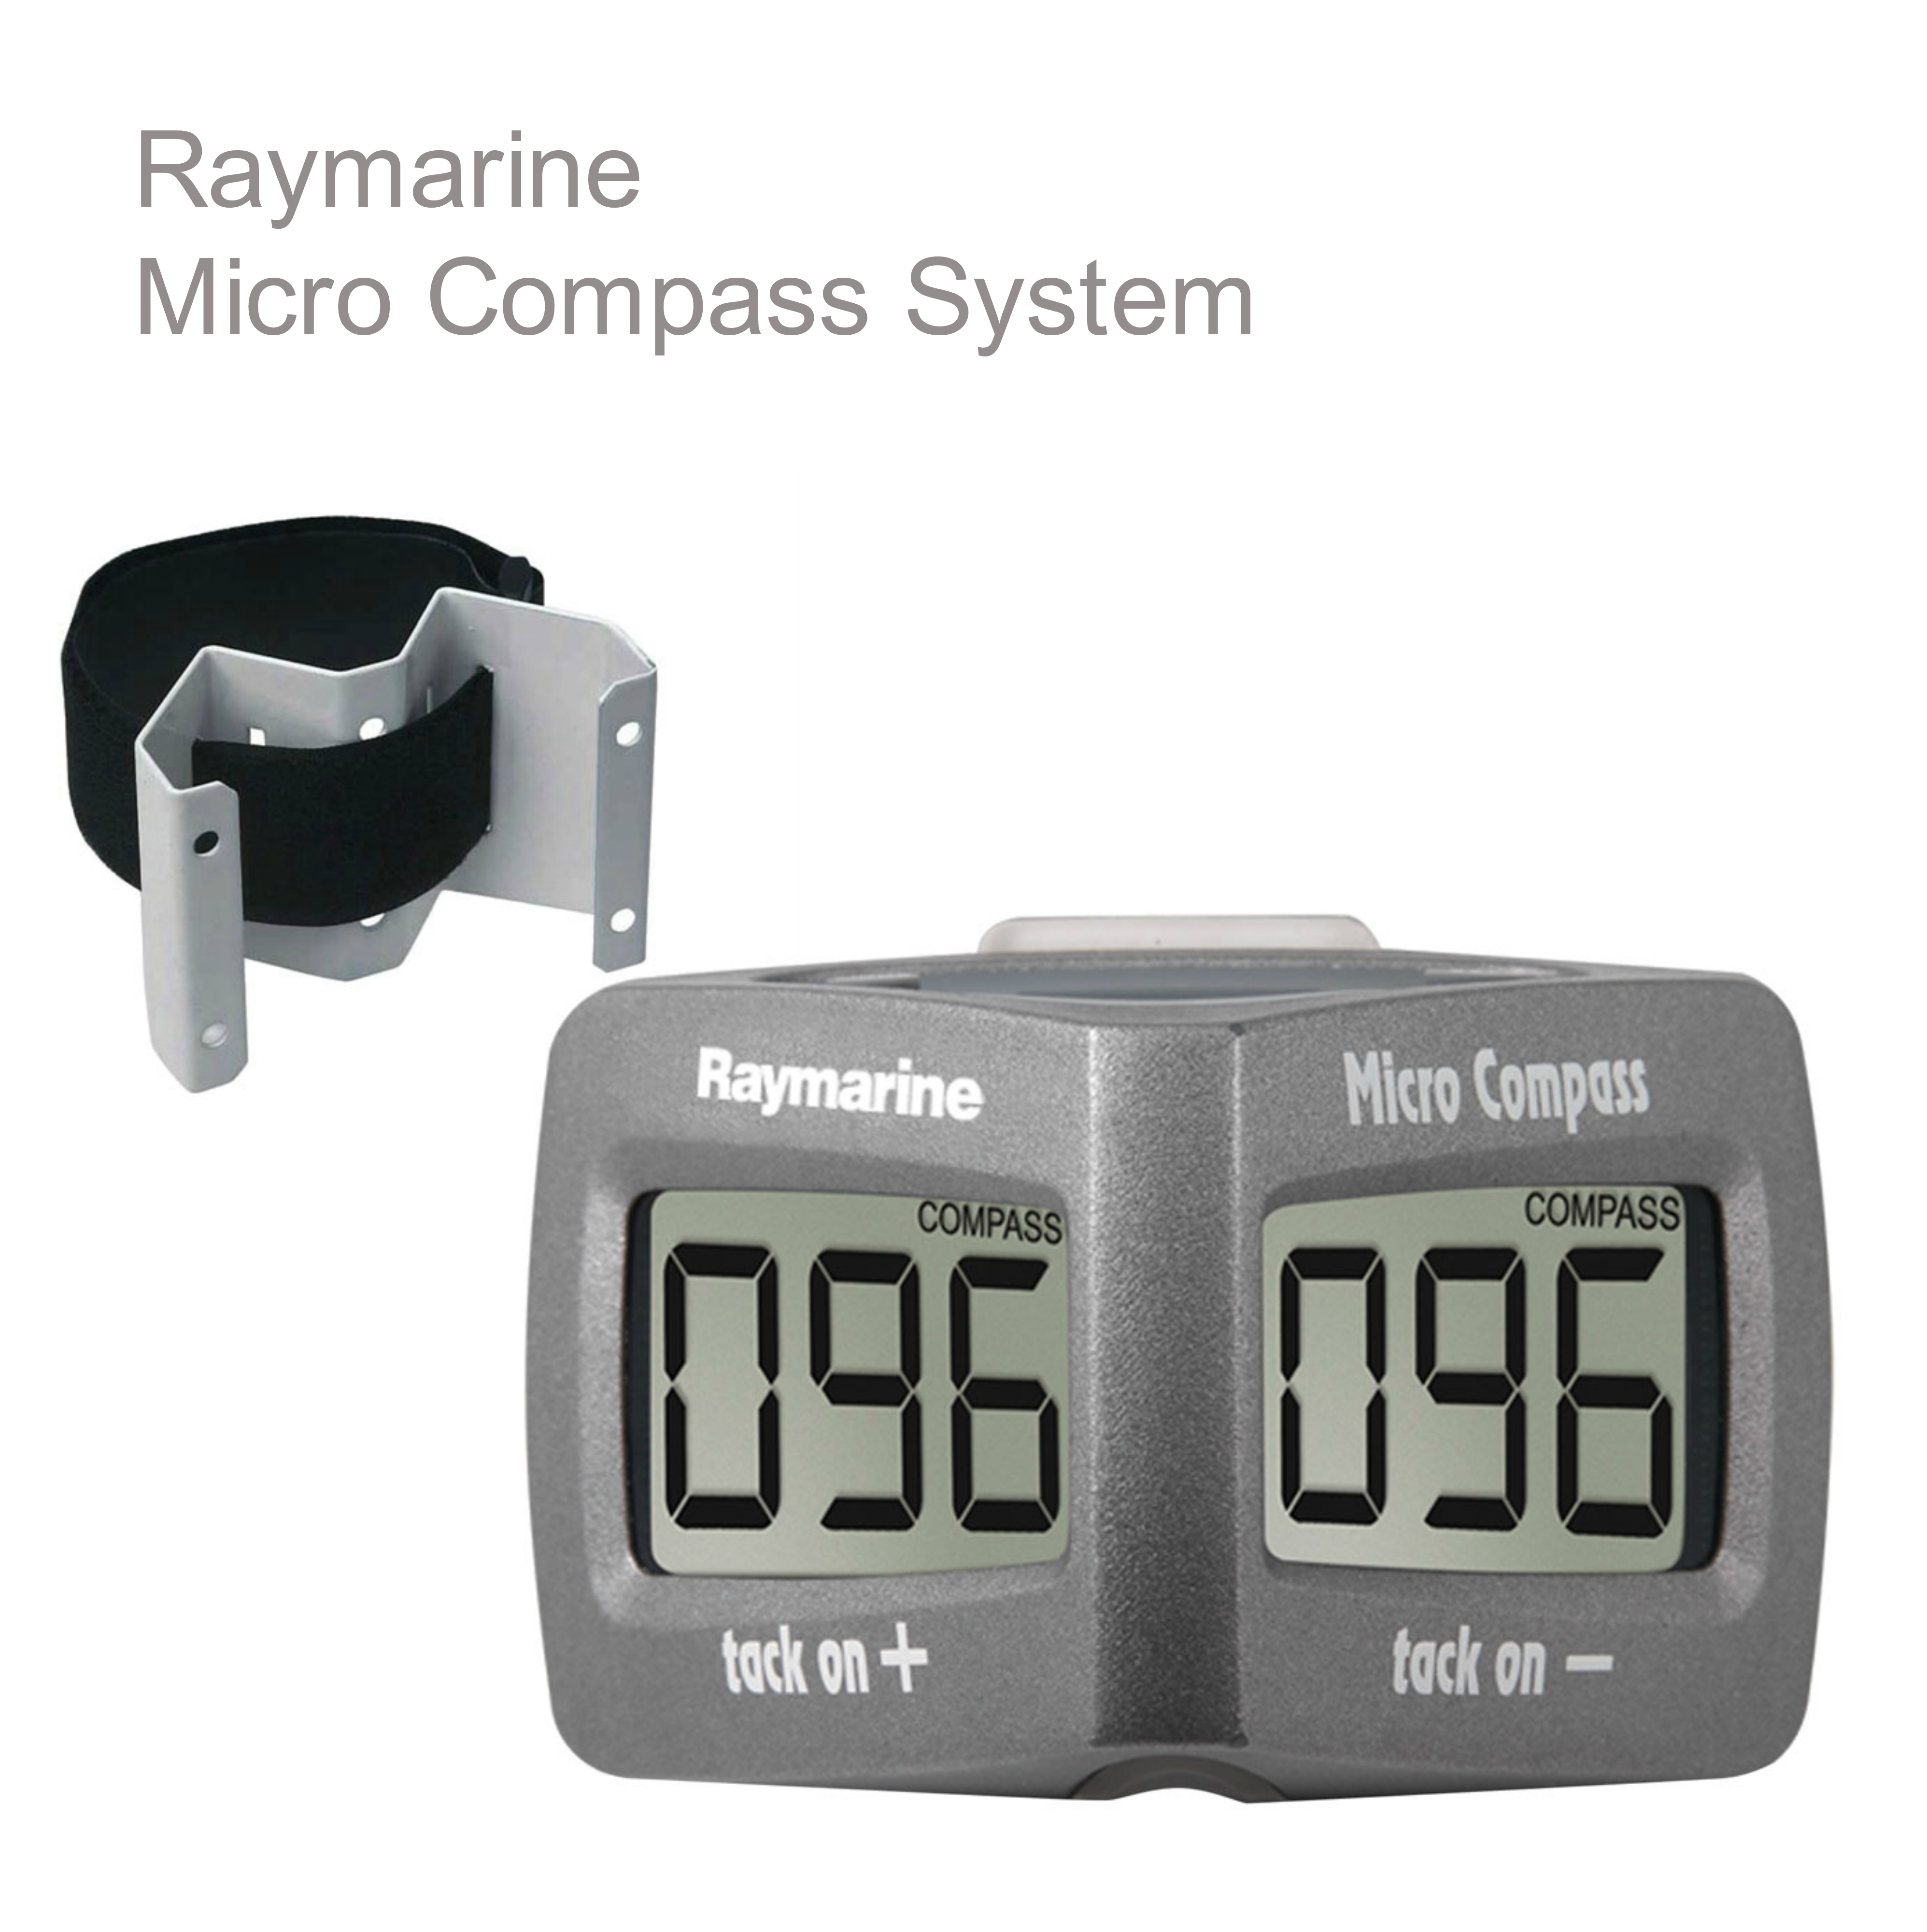 Raymarine T061 Micro Compass System|Waterproof|VMG|Stable Wind Speed|For Marine